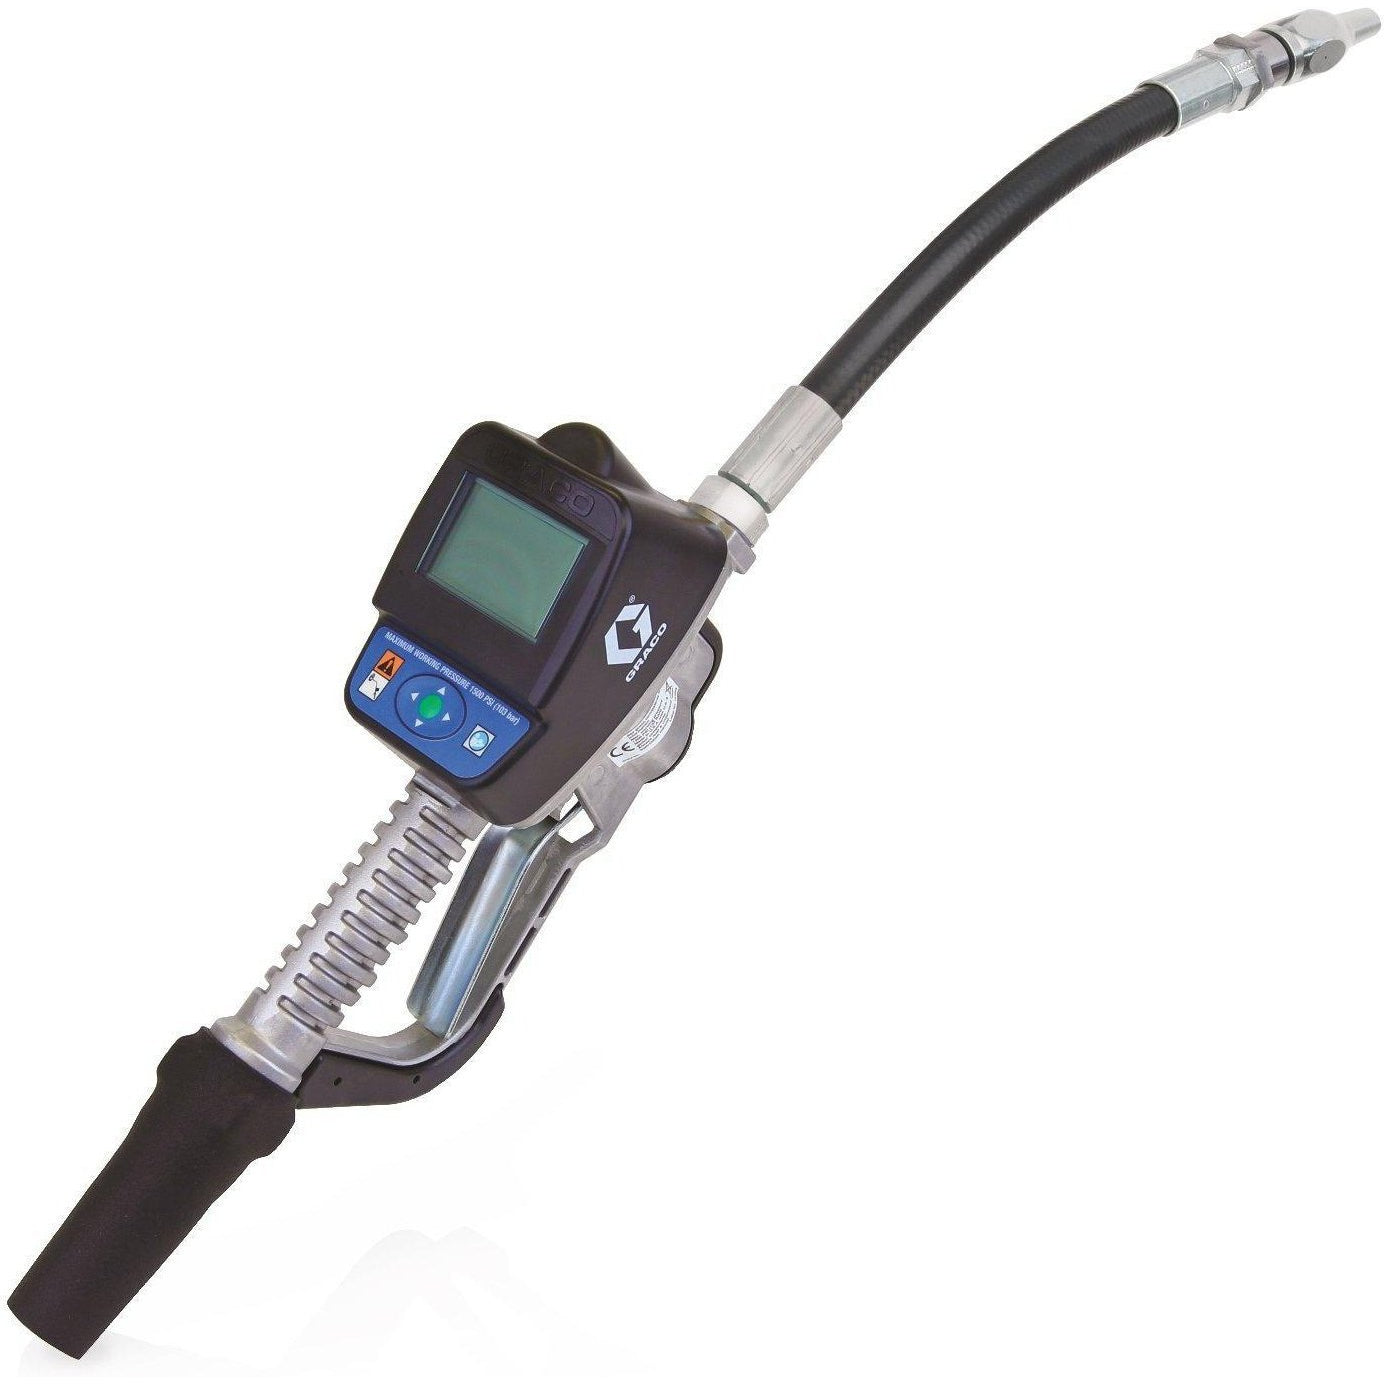 "24H132-Graco 24H132 Sdm5 Series Electronic Manual Anti-Freeze Meter - Flexible Extension - 1/2"" Inlet - Bspp-Order-Online-Fireball-Equipment"